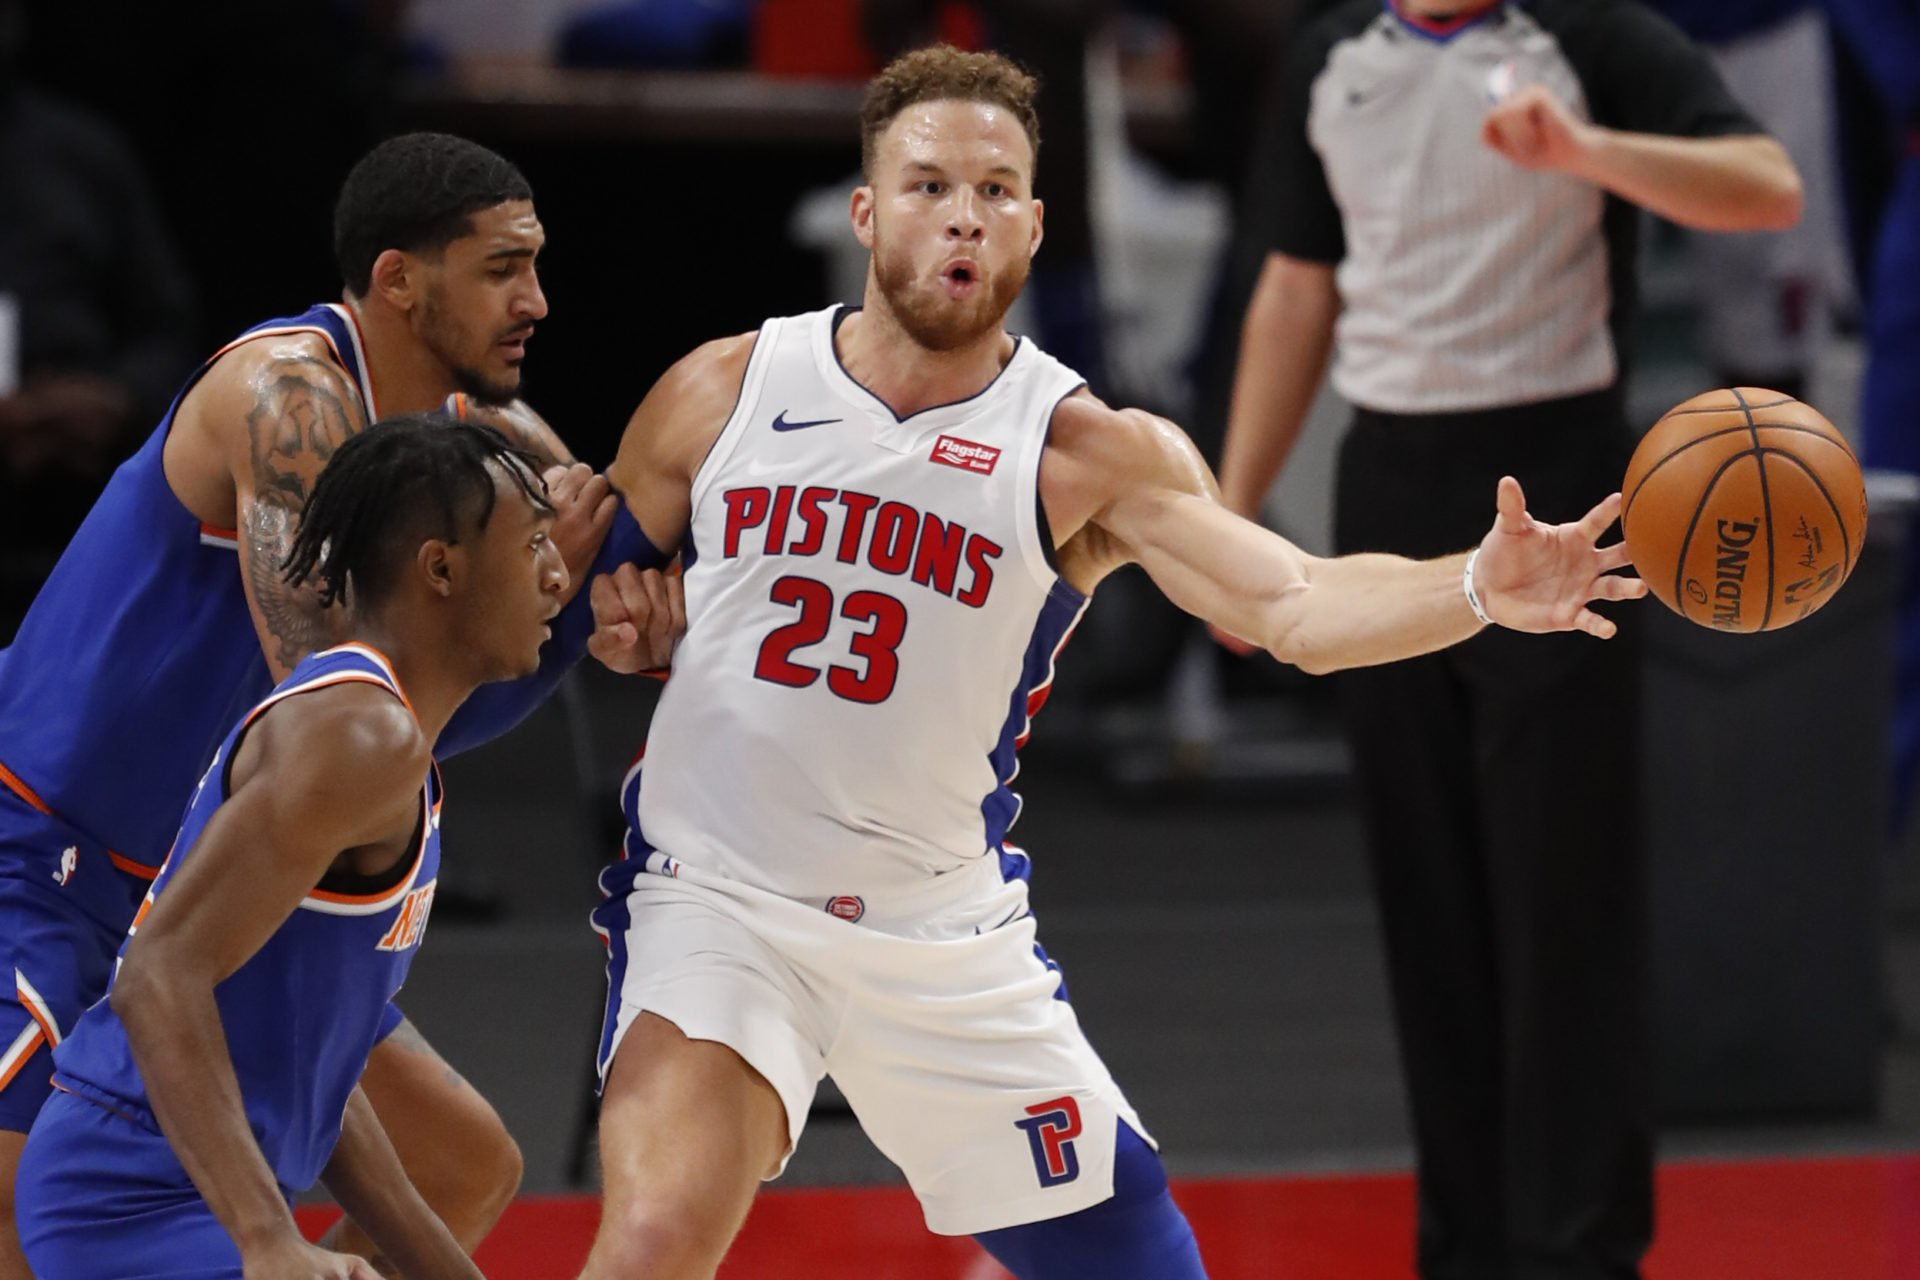 Dec 13, 2020; Detroit, Michigan, USA; Detroit Pistons forward Blake Griffin (23) passes the ball as he is covered by New York Knicks forward Obi Toppin (1) during the second quarter at Little Caesars Arena. Mandatory Credit: Raj Mehta-USA TODAY Sports